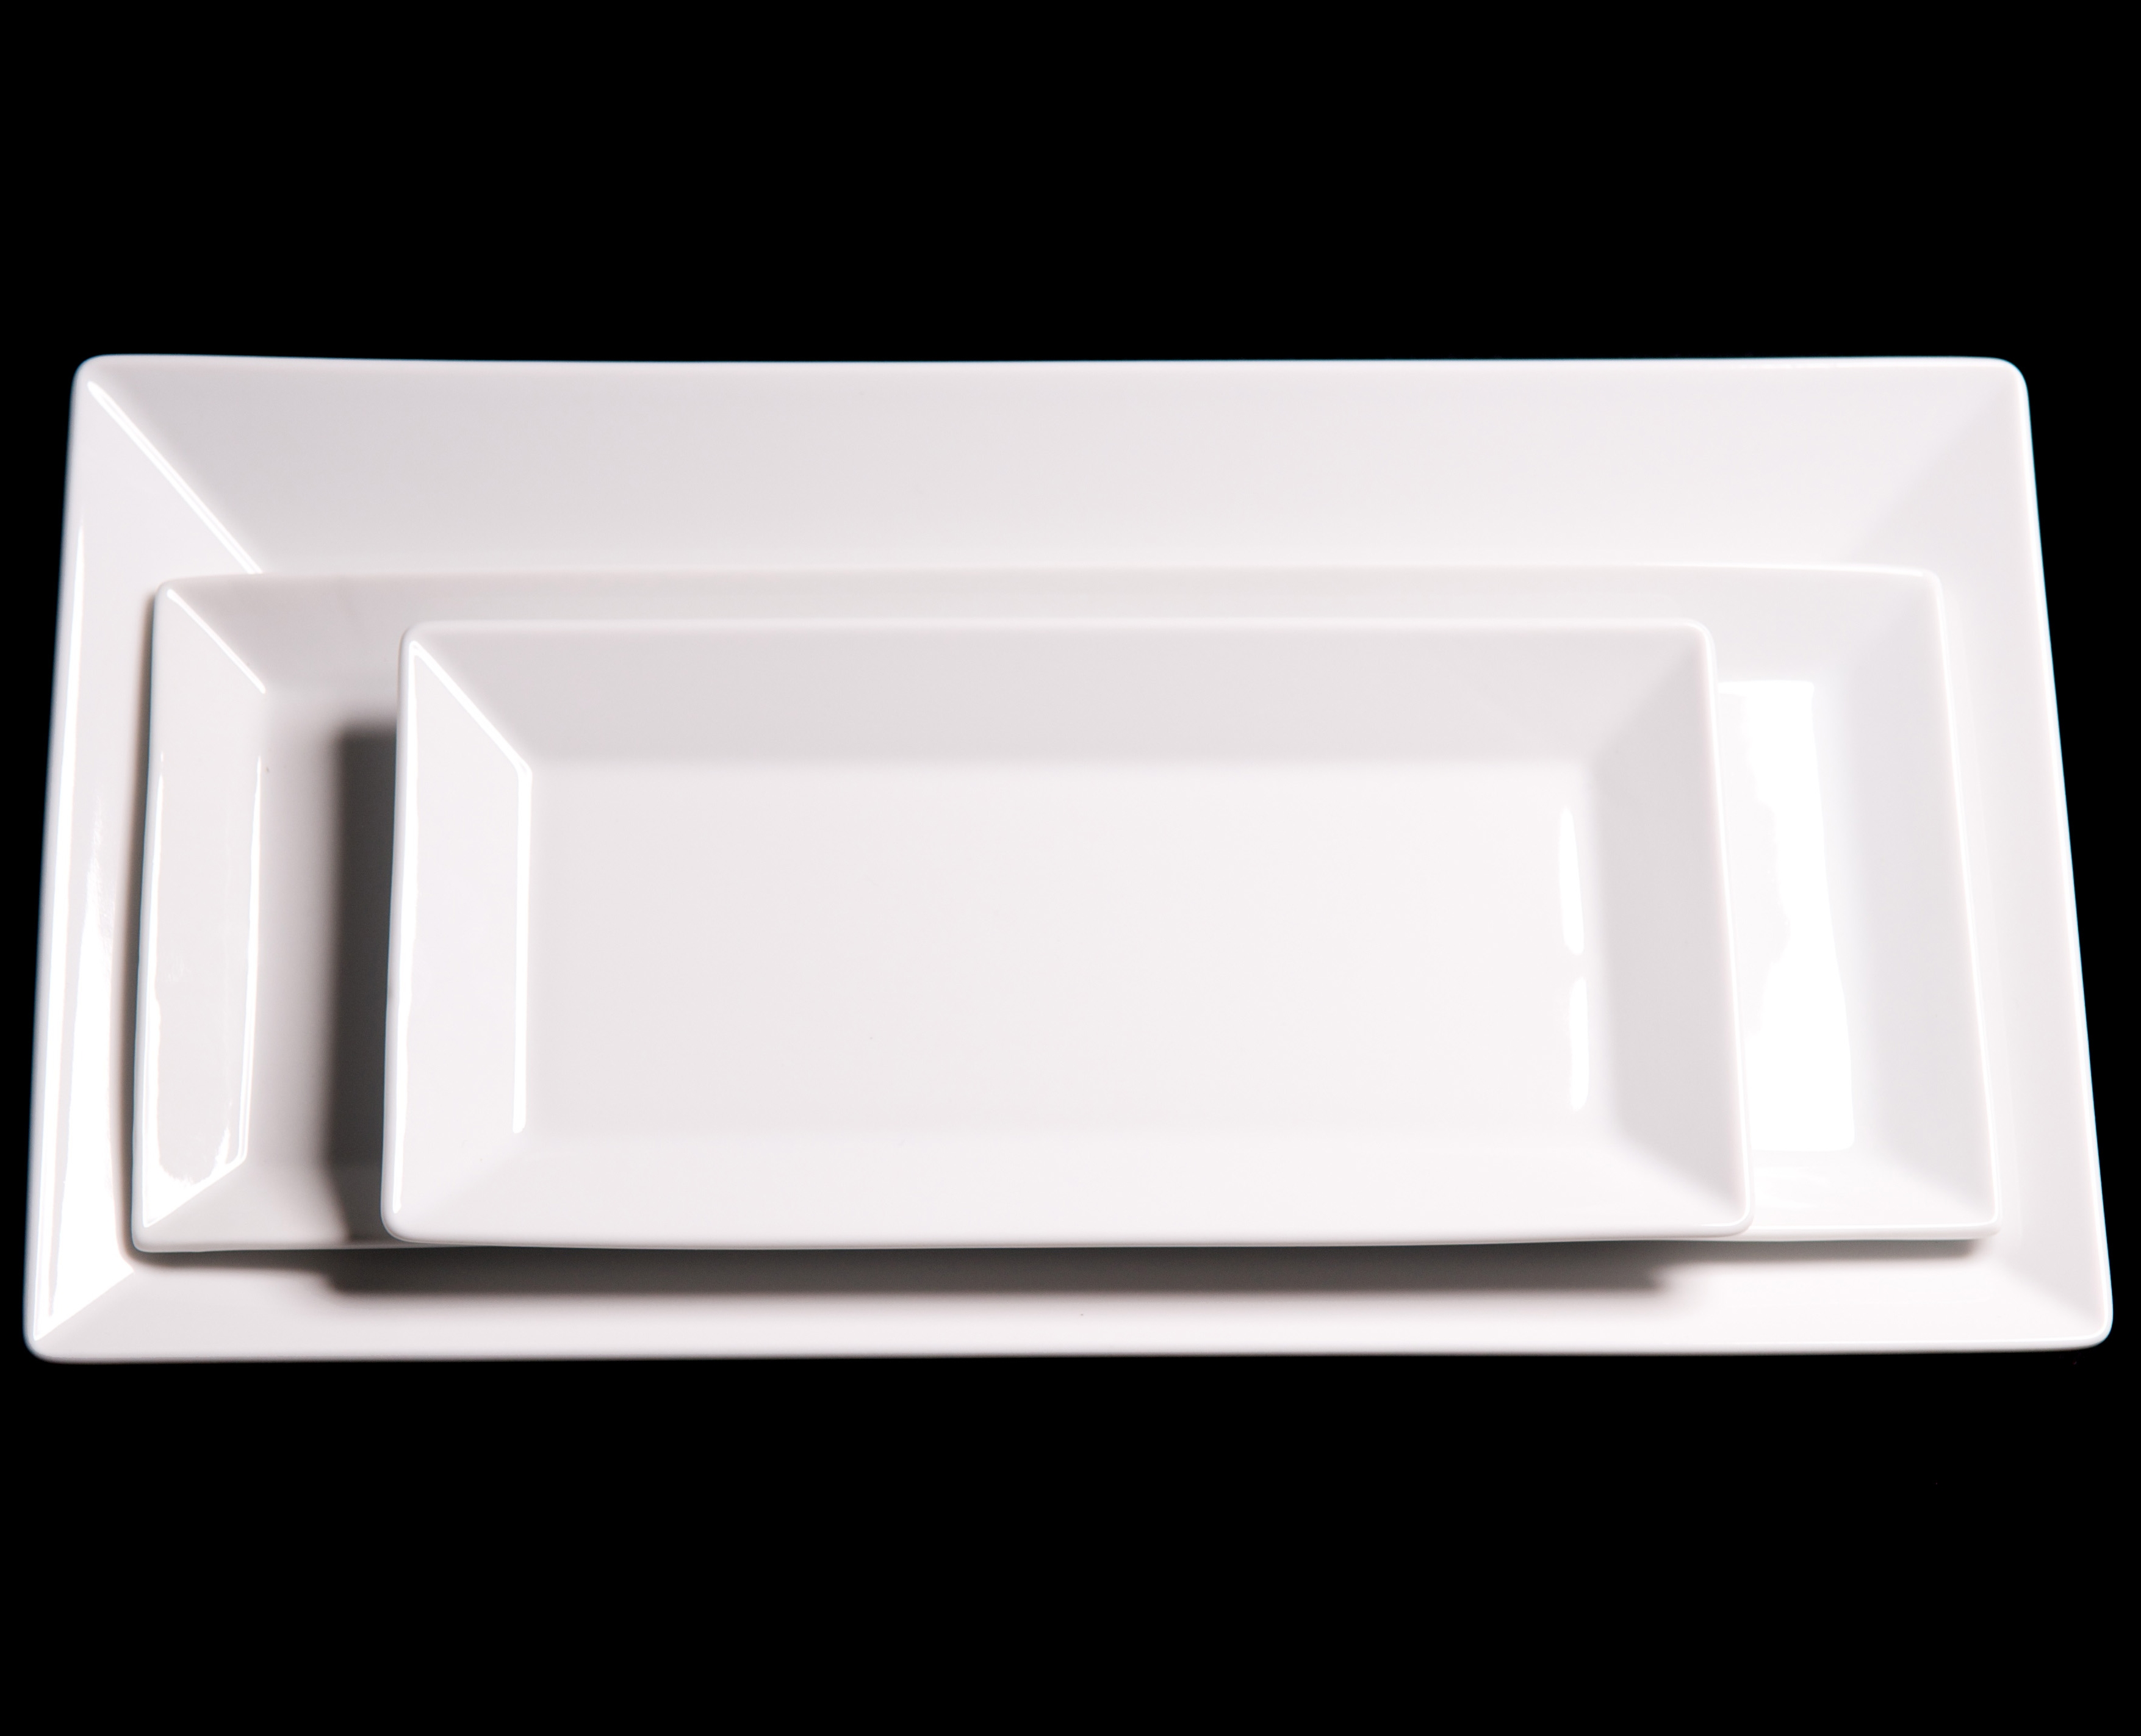 Lubiana Classic Rectangular Plate 33cm X 18cm Only 163 5 70